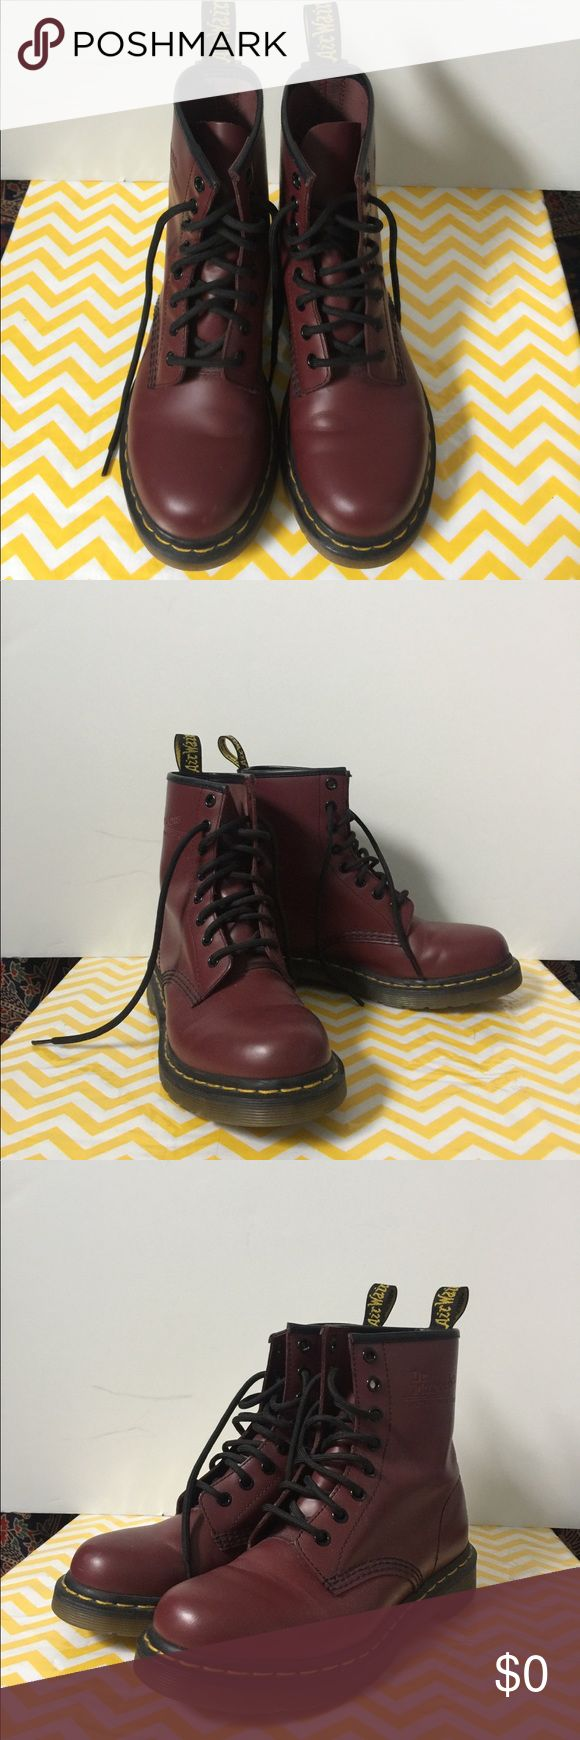 Dr. Marten boots Cherry red smooth color Dr Marten Boots....only worn once. Size 7. Dr. Martens Shoes Ankle Boots & Booties